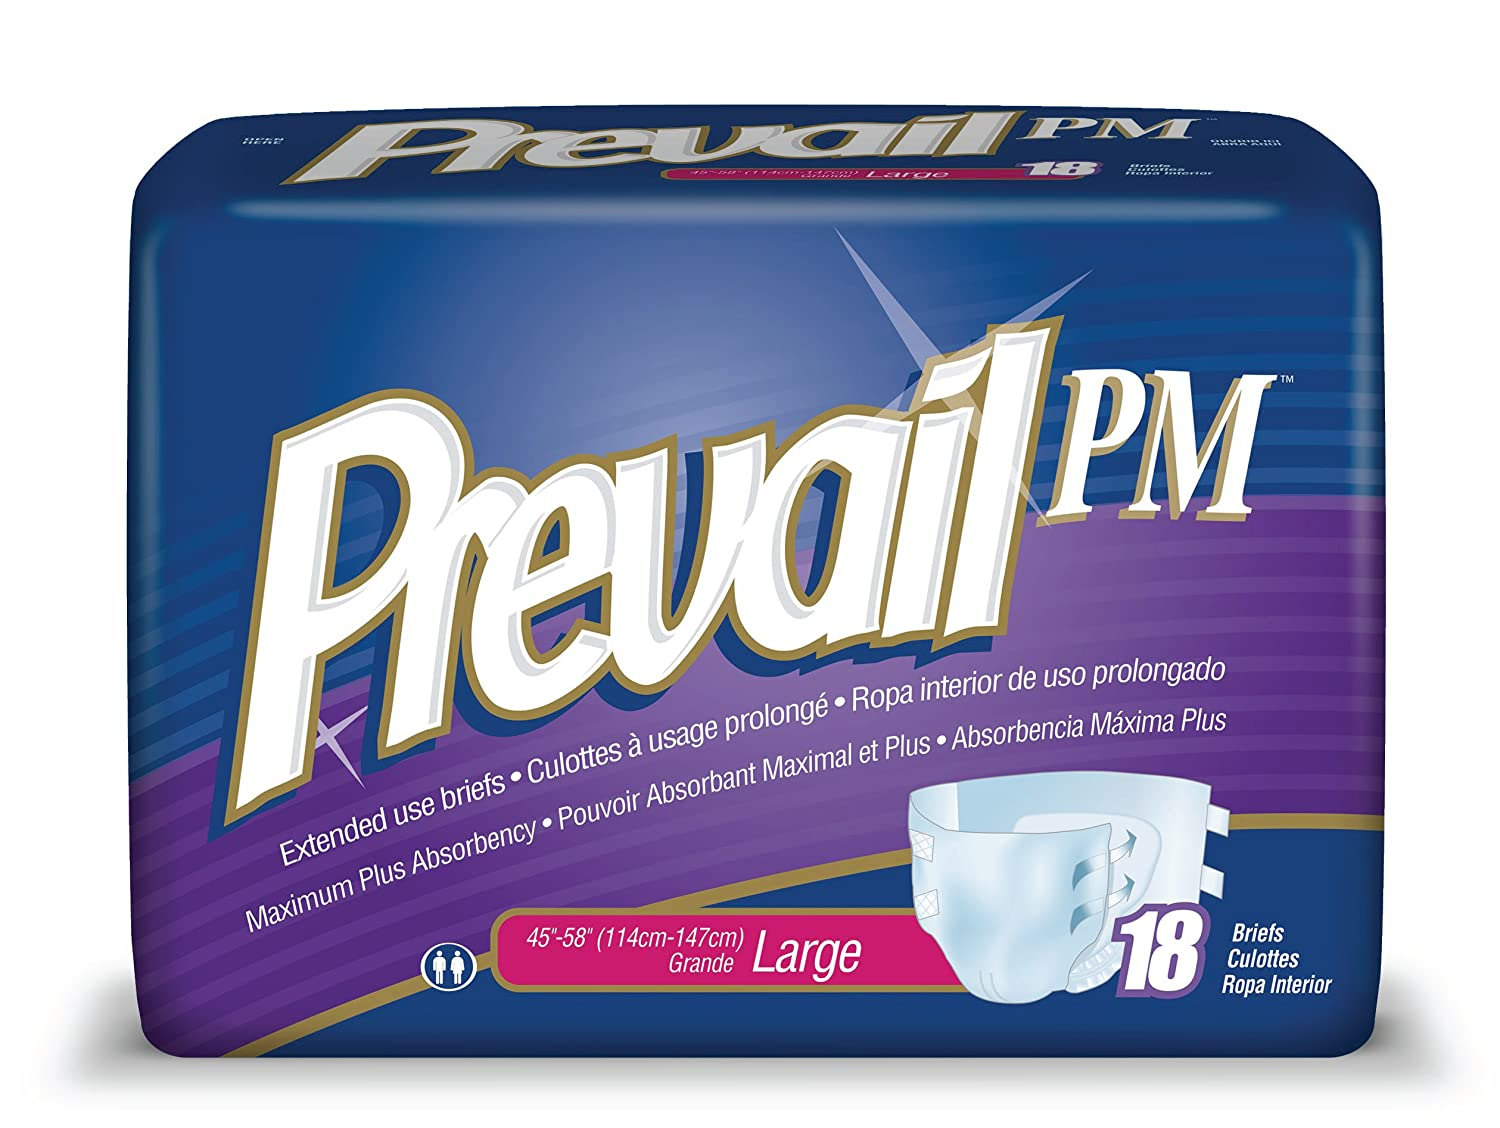 Amazon.com: Prevail Extended Use Incontinence Briefs, Large, 18-Count: Health & Personal Care